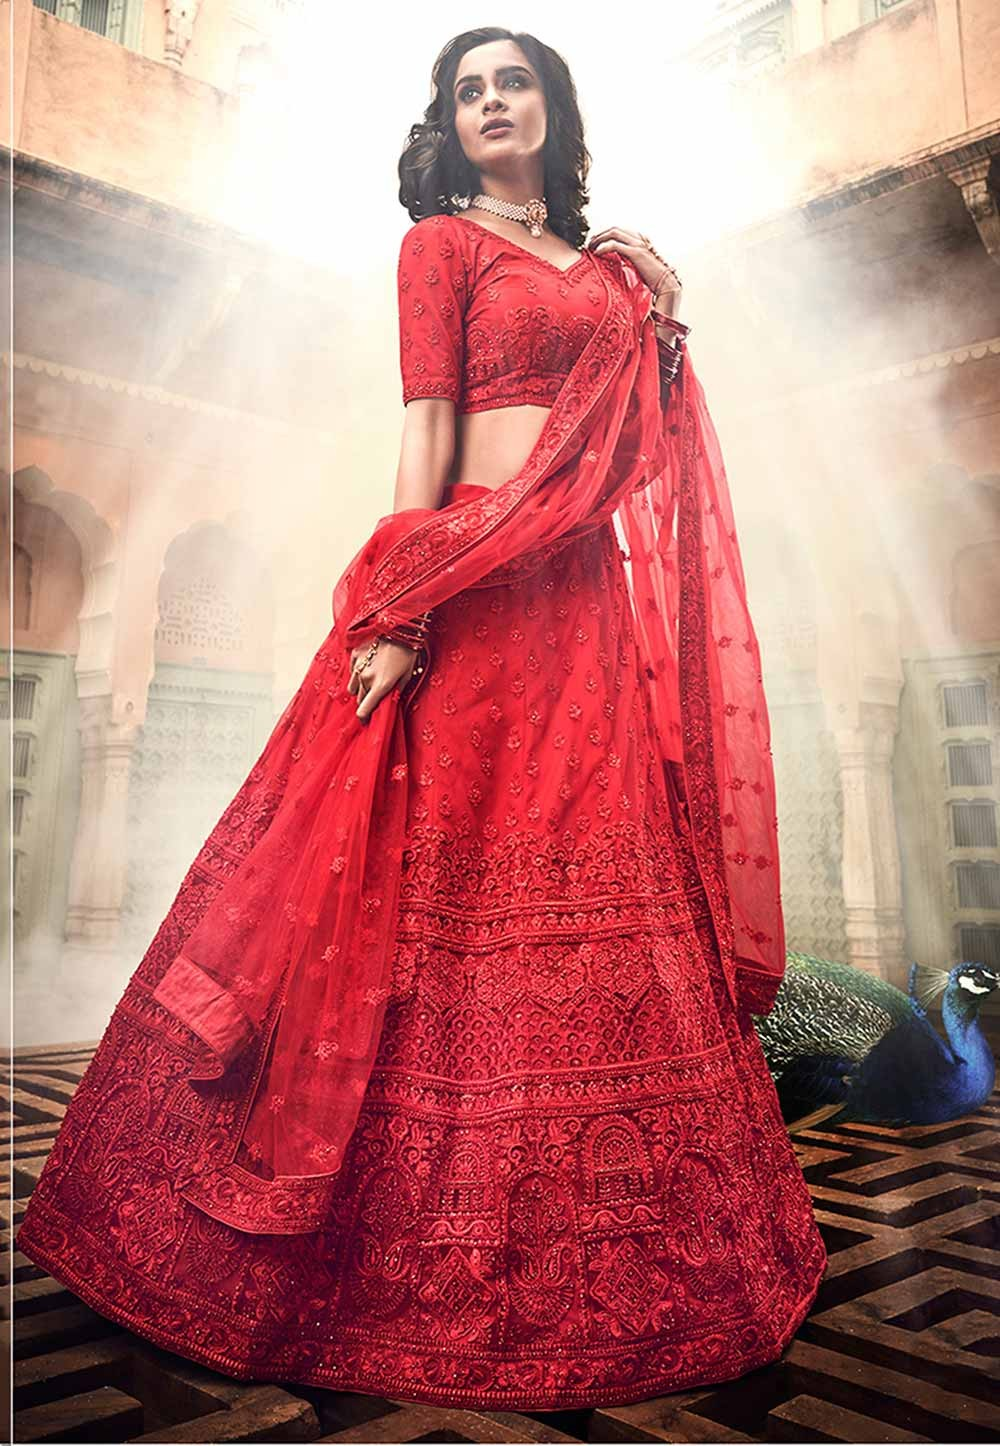 Red Colour Indian Wedding Lehenga Choli.